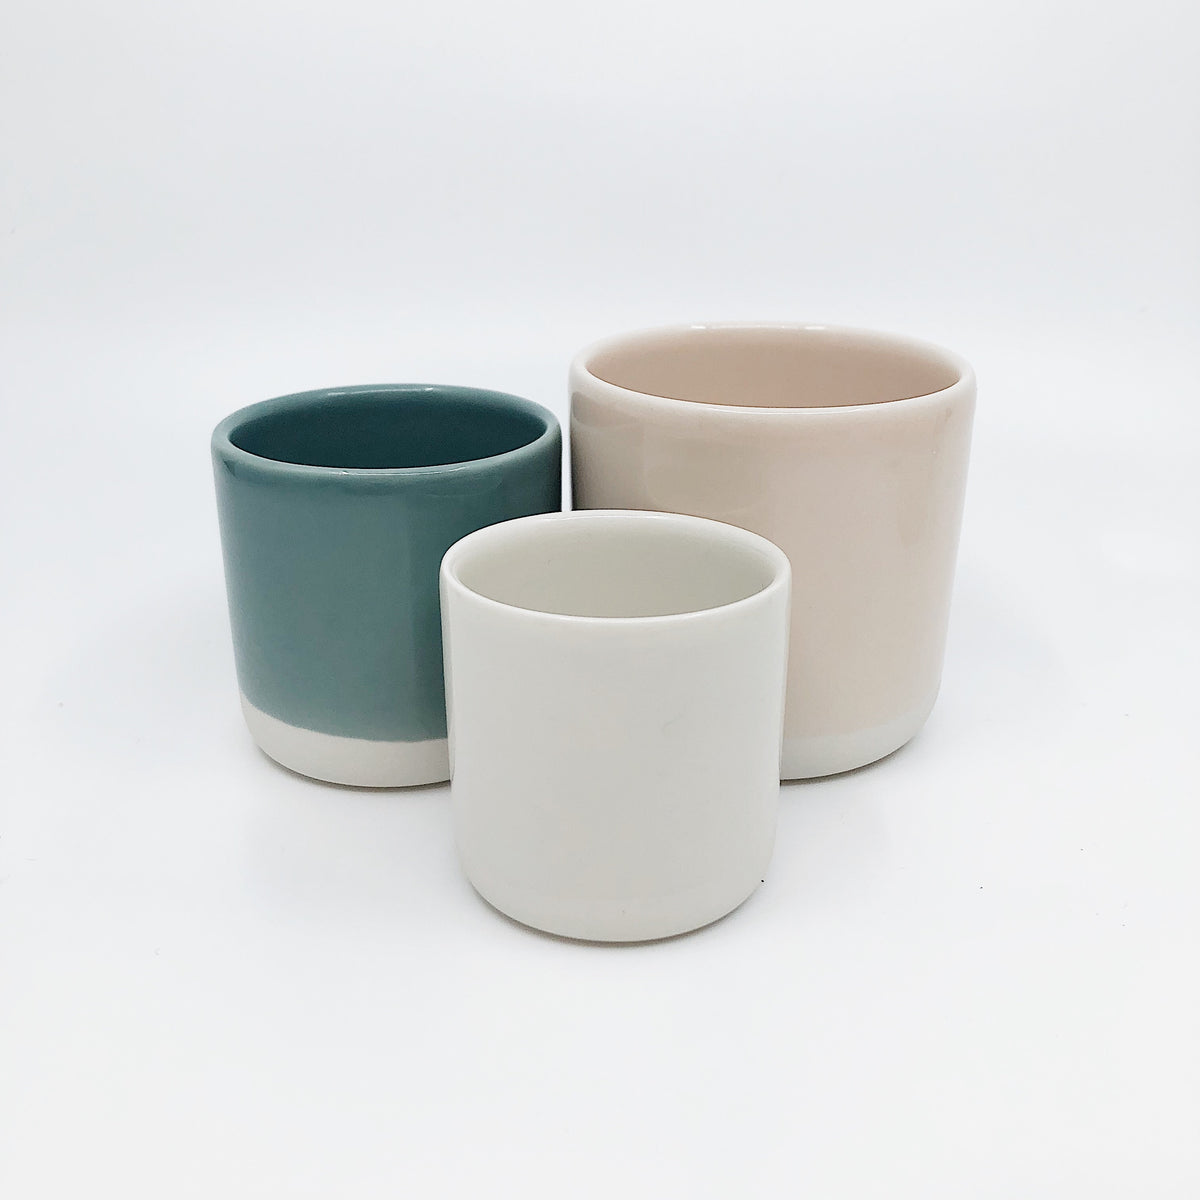 Half Glazed Ceramic Cup Large (5690951367)